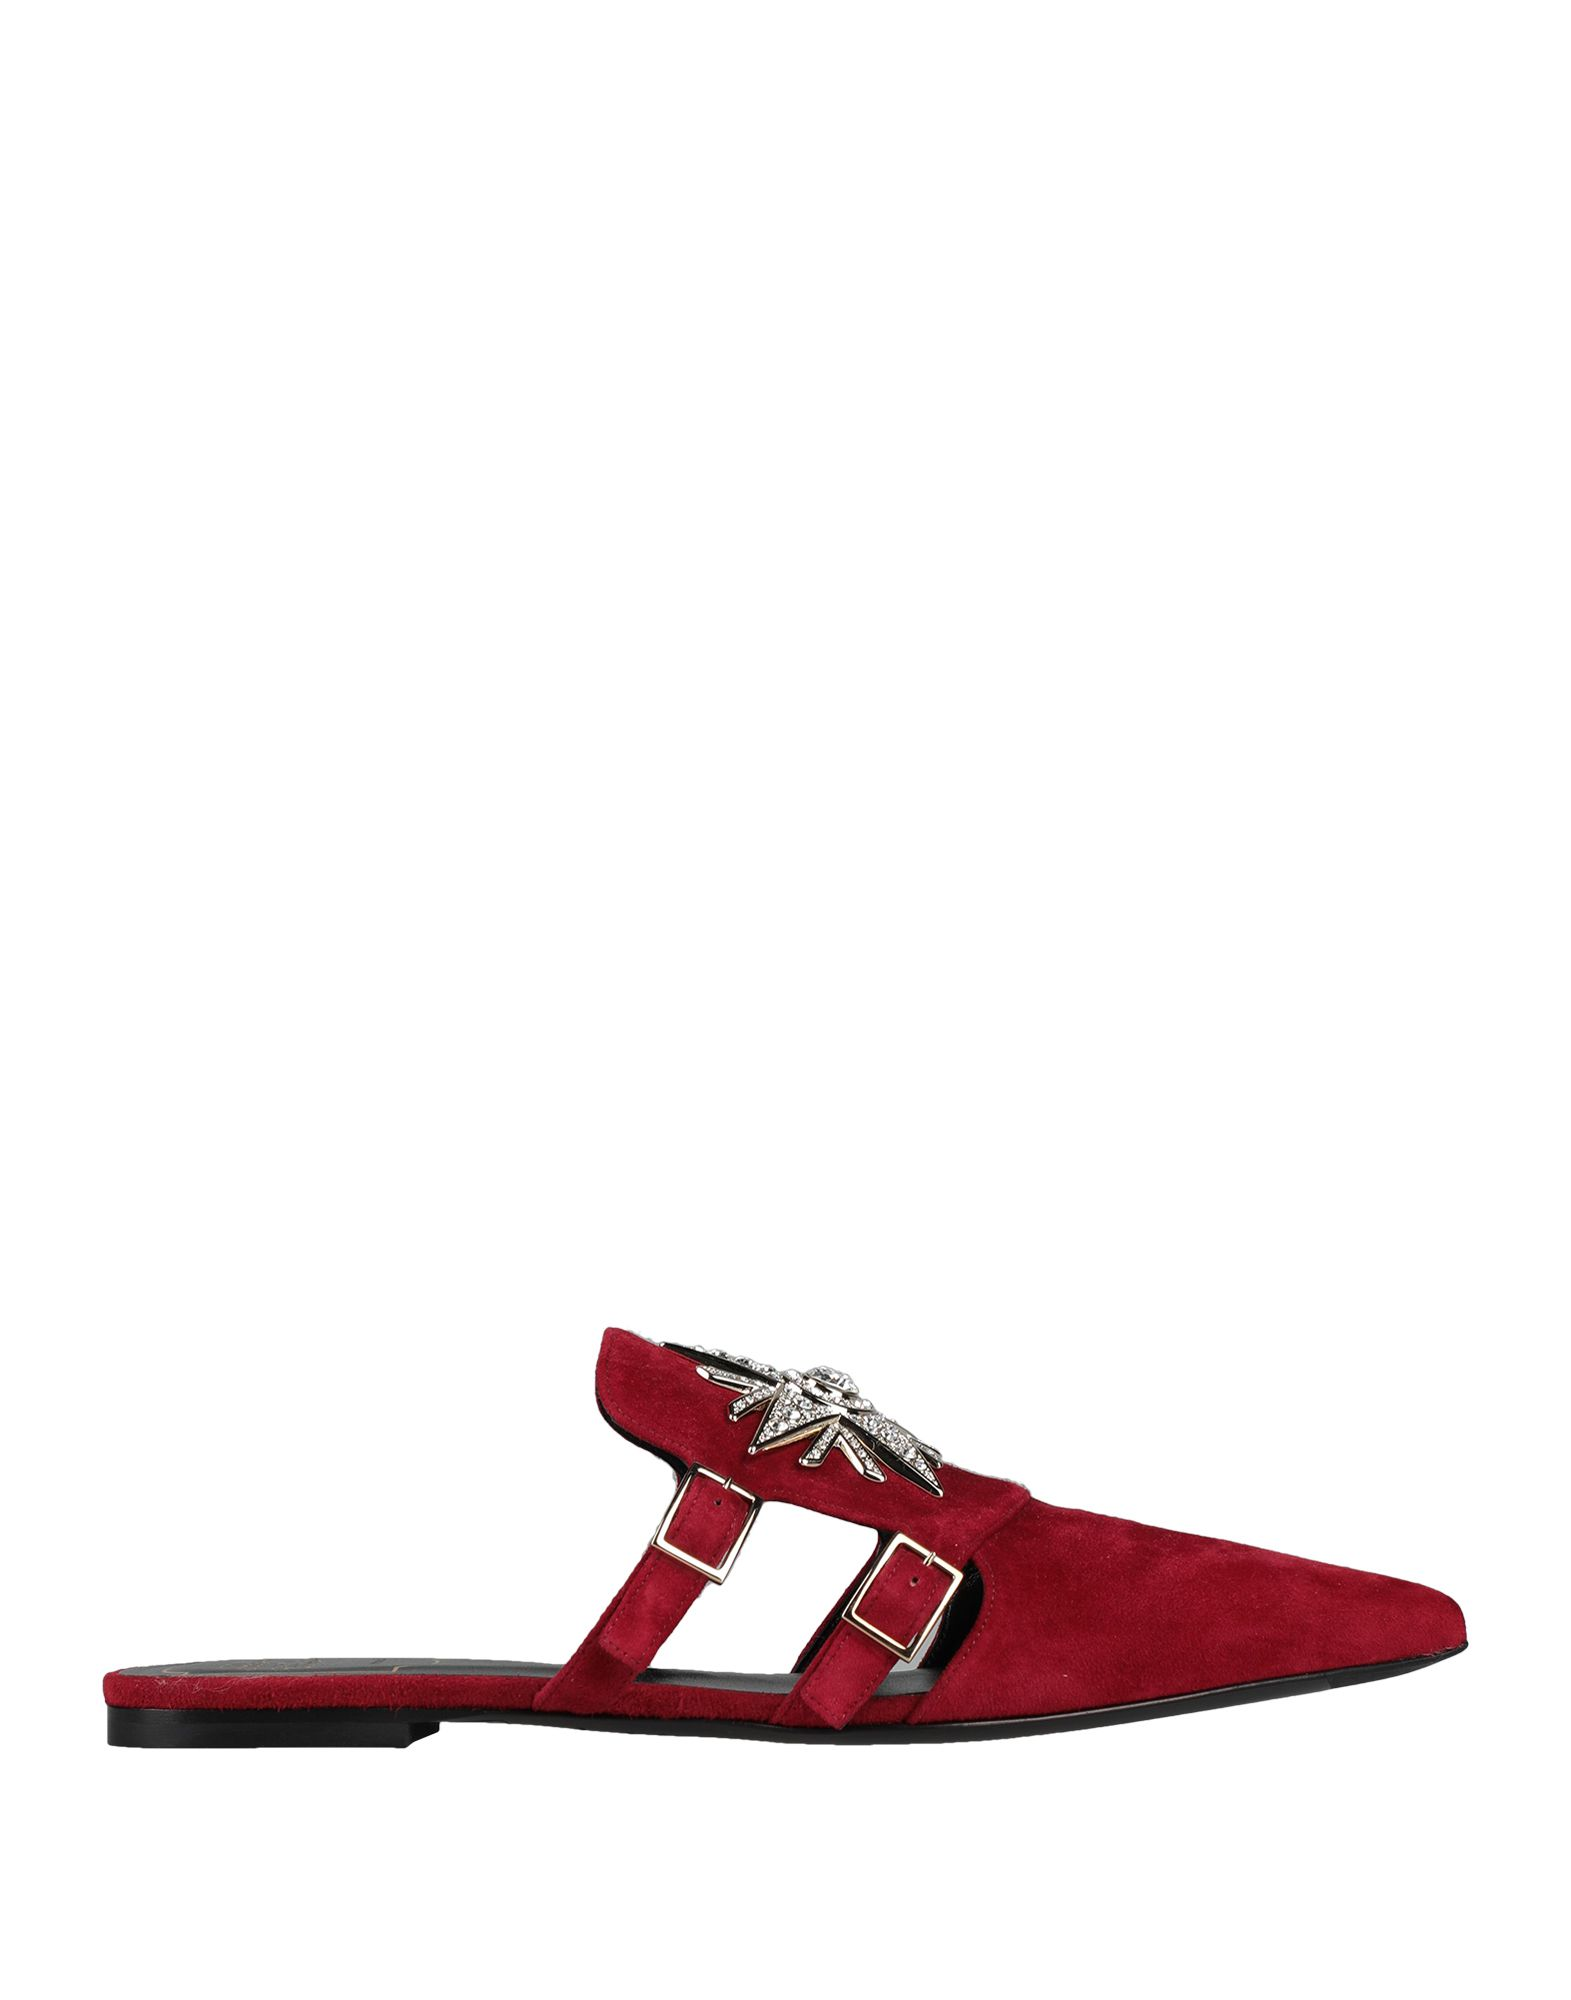 ROGER VIVIER Mules. leather, suede effect, buckle, rhinestones, solid color, narrow toeline, flat, leather lining, leather sole, contains non-textile parts of animal origin. Soft Leather